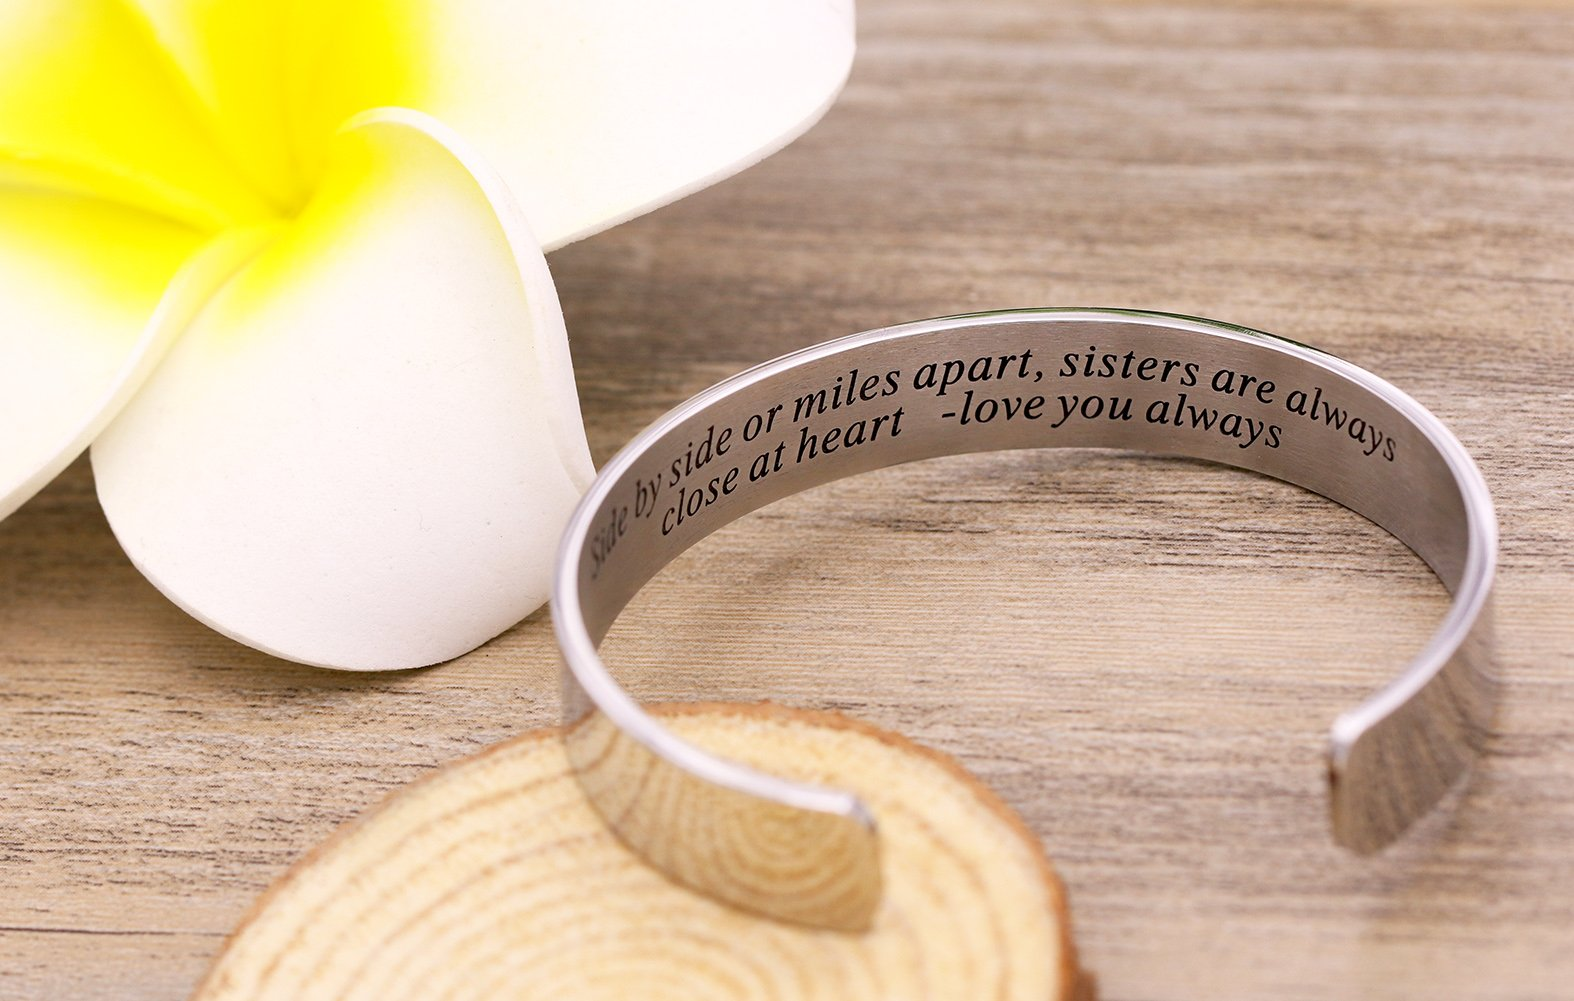 Side By Side Or Miles Apart Bracelet Stainless Steel . Sister to Sister Gift ,Maid of Honor Gift / Bridesmaids Gifts (White) by Melix Home (Image #4)